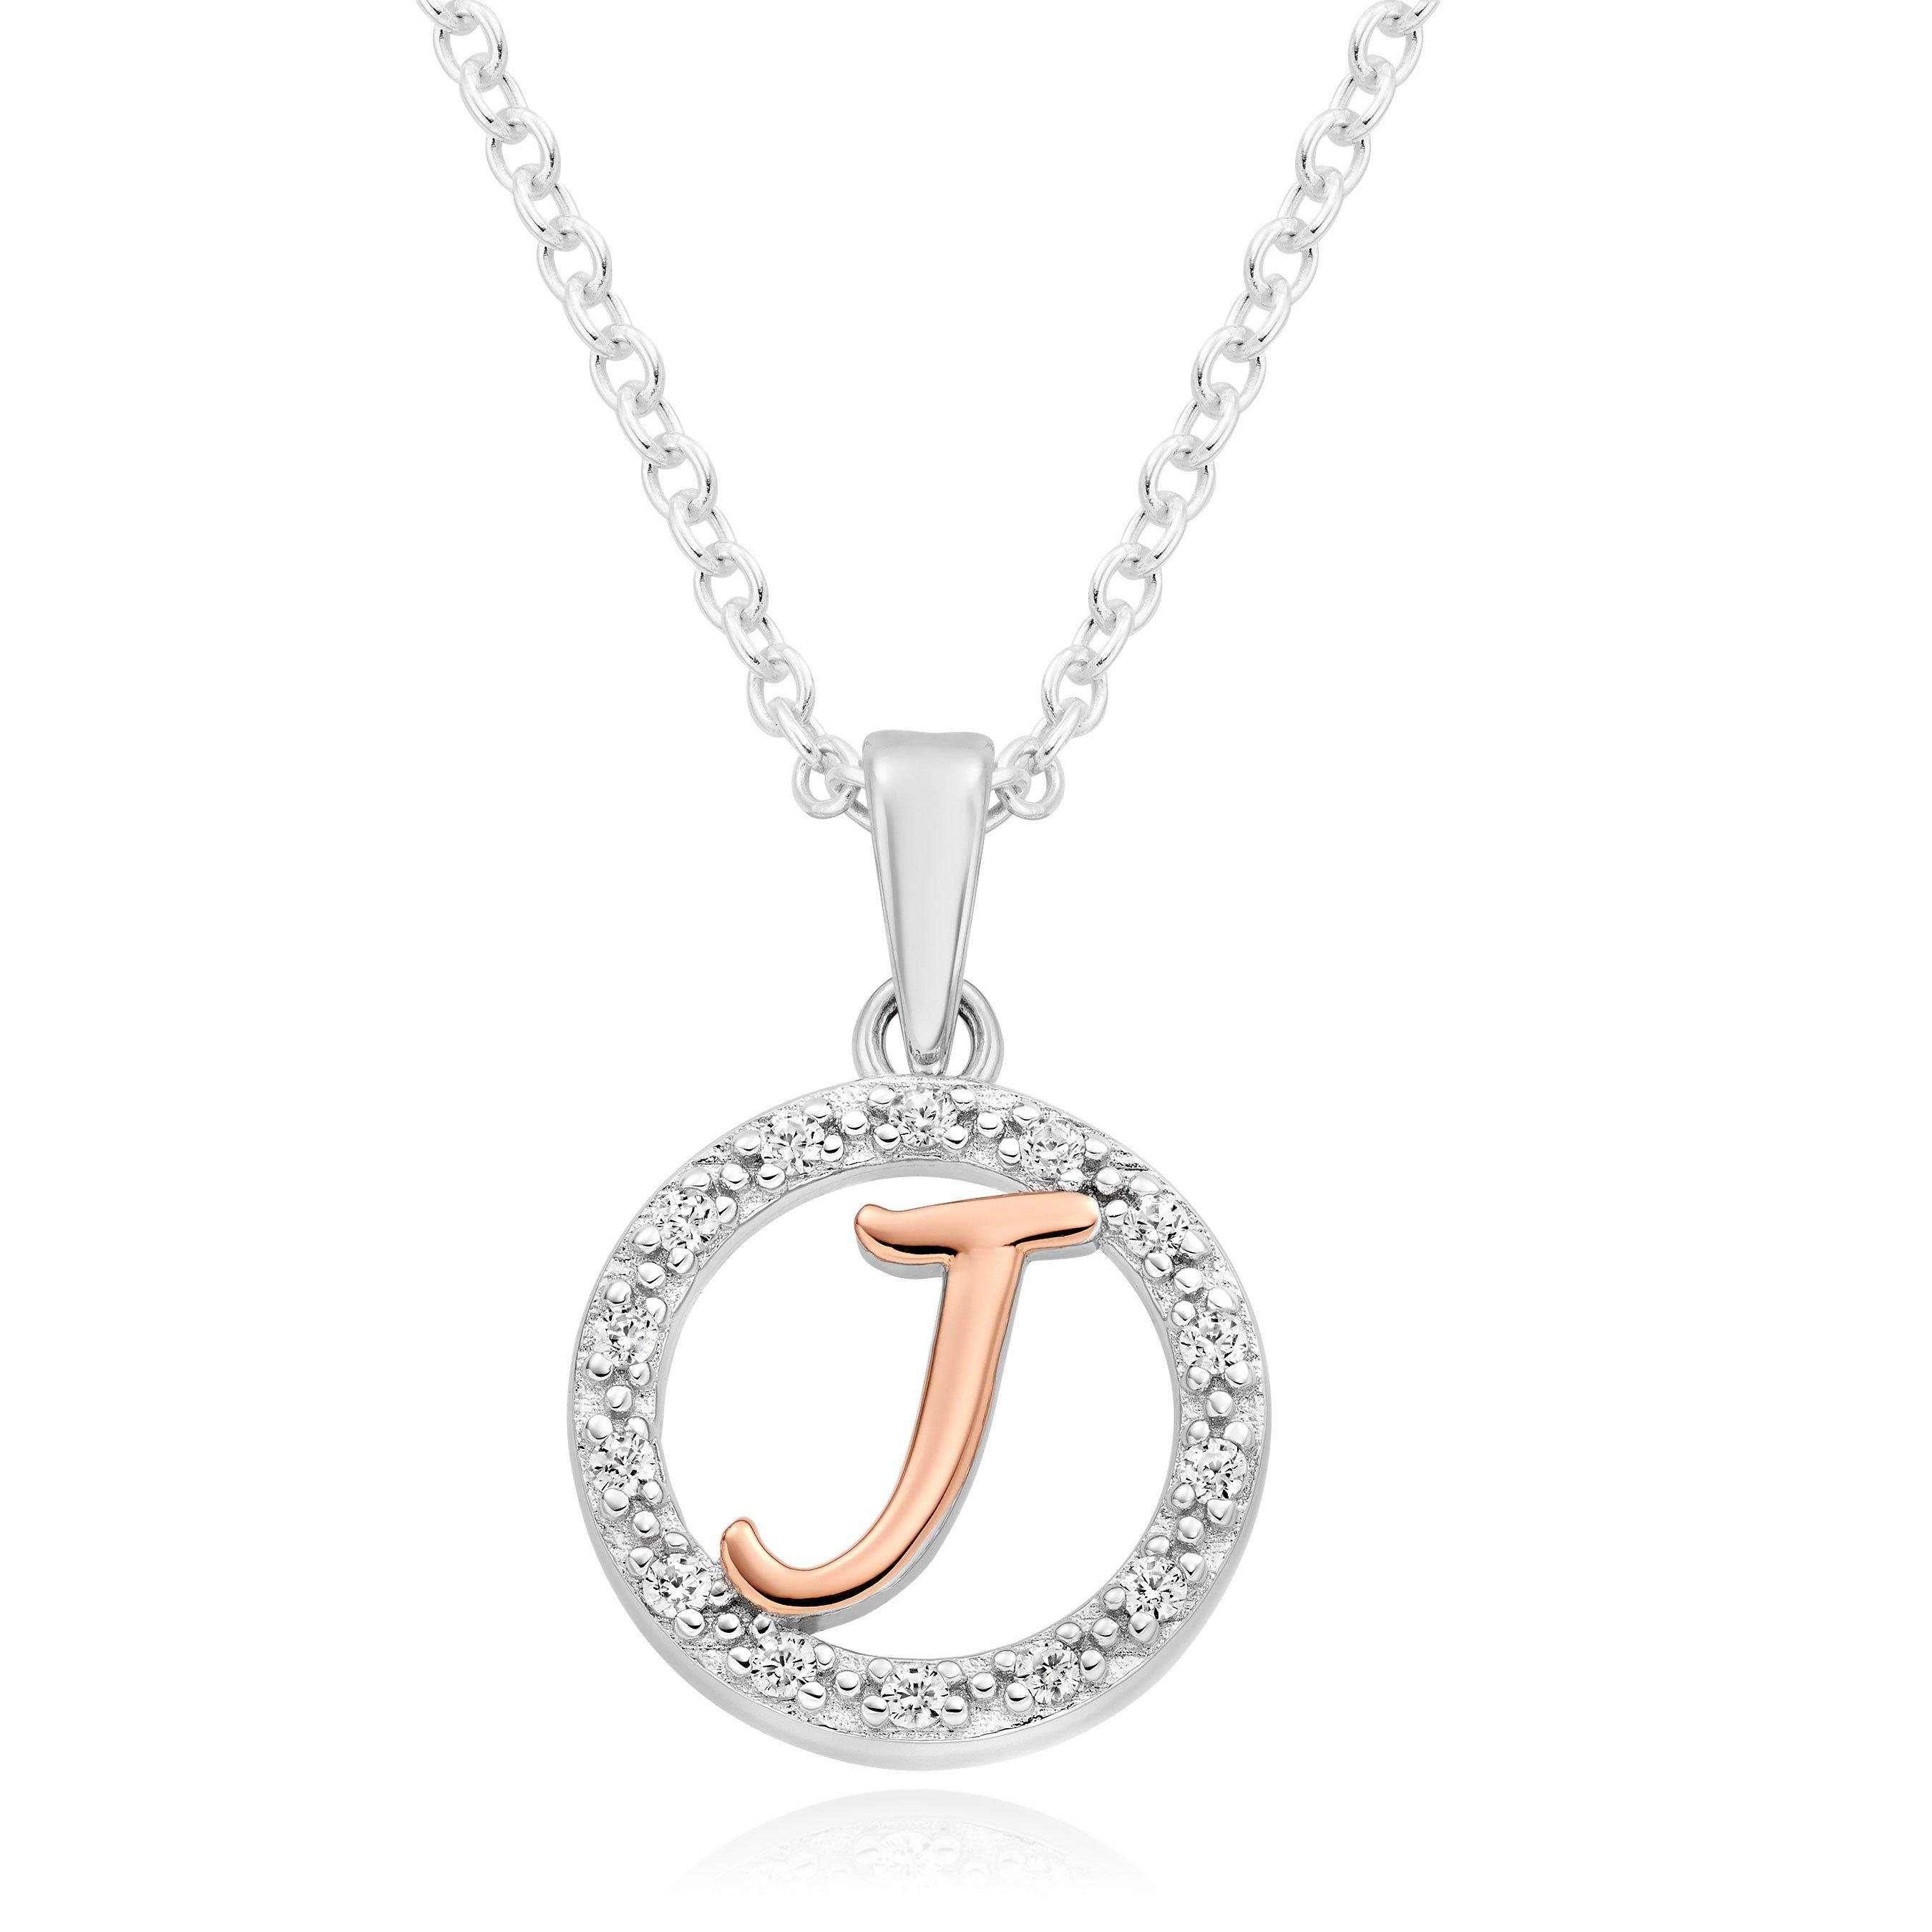 Silver Rose Gold Plated Cubic Zirconia Letter J Pendant